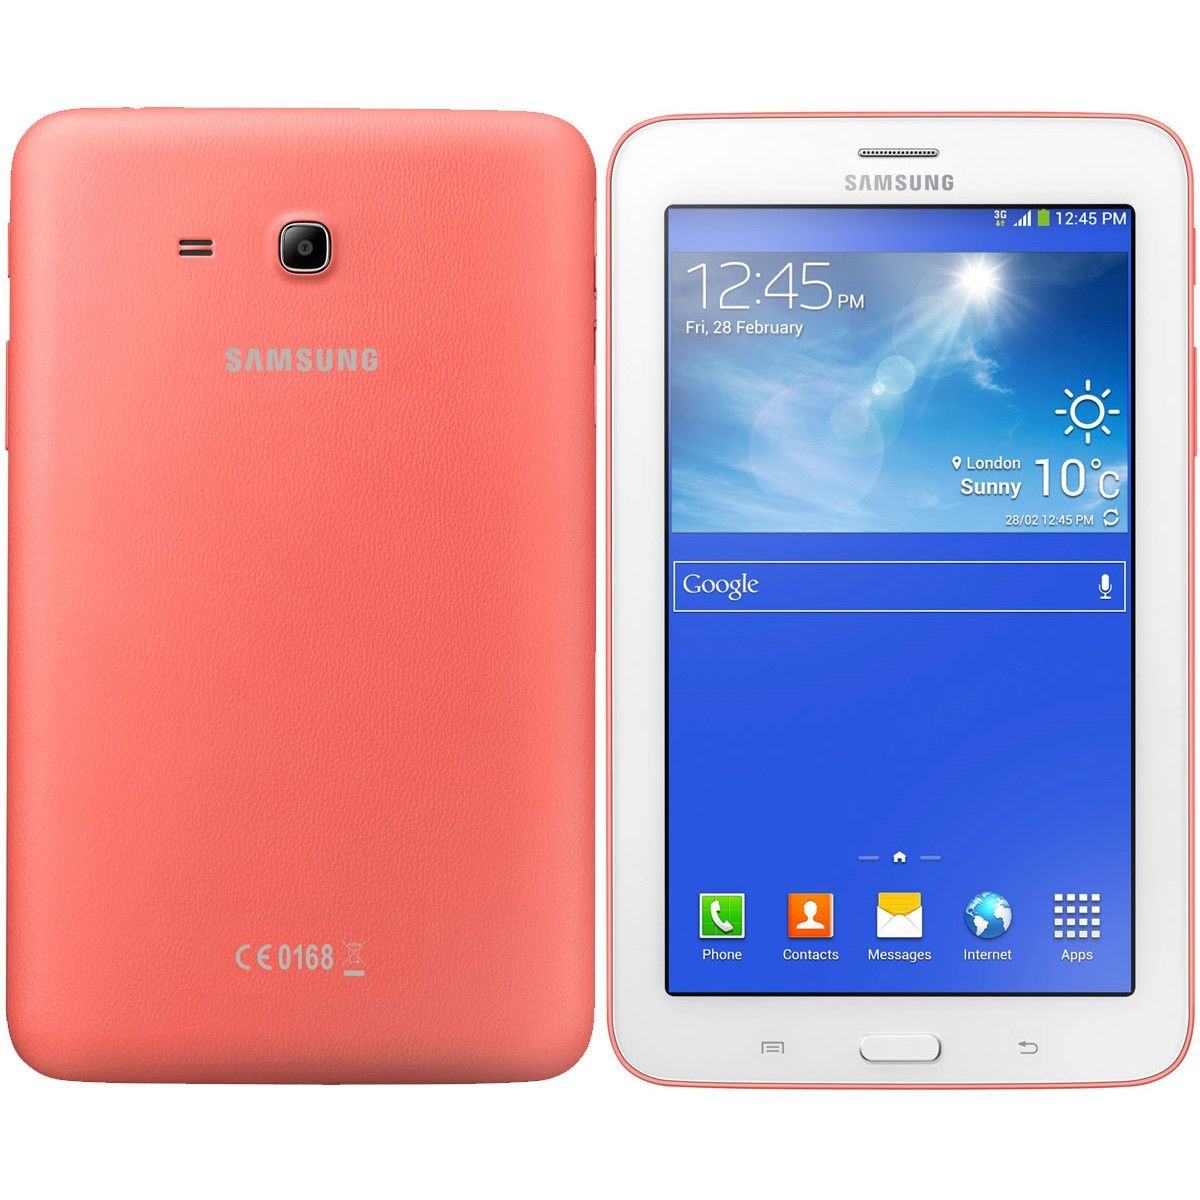 Tablet samsung galaxy 3 root the samsung galaxy tab 3 - Samsung T111 Galaxy Tab 3 Lite 7 0 Pink 8gb 3g Tablet Get Yours Here Http